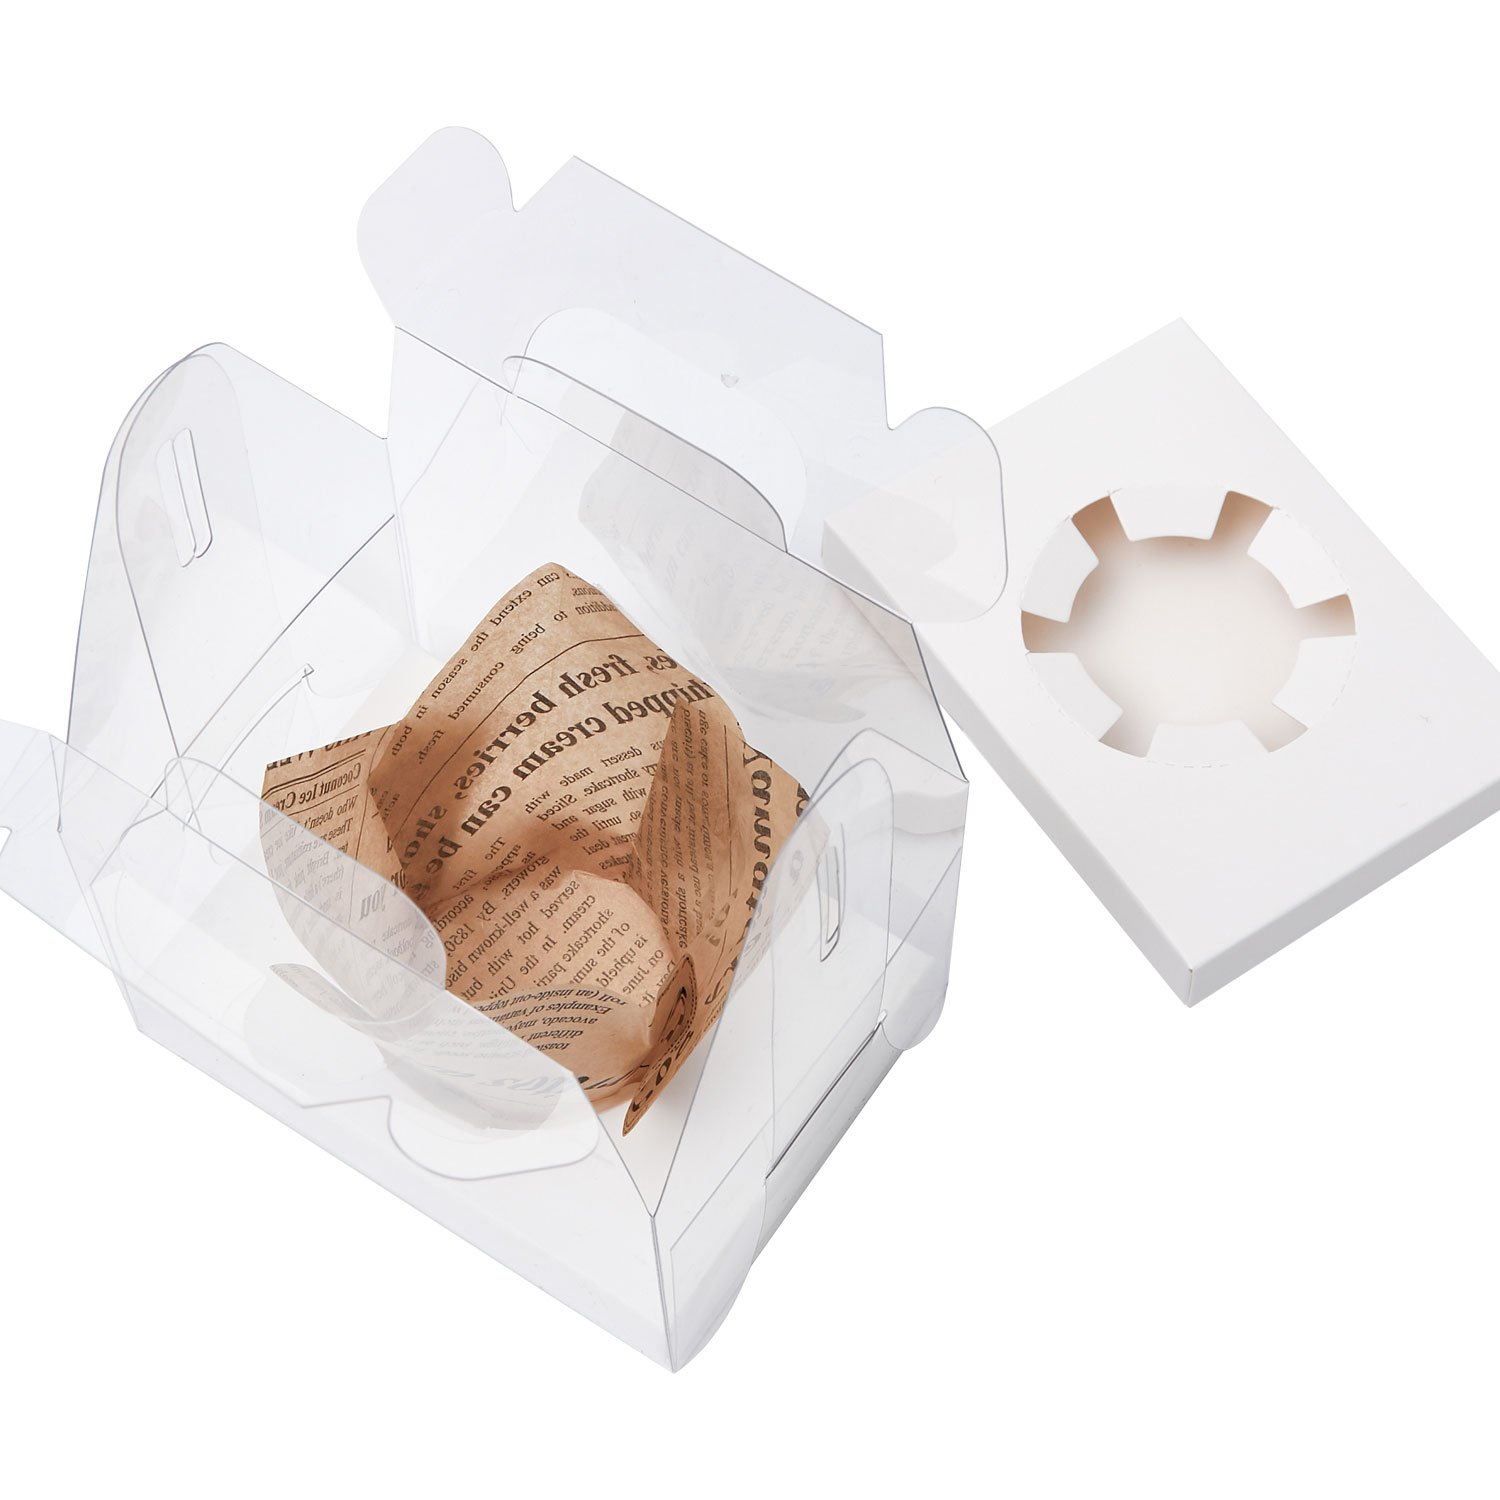 Yotruth Clear Single Cupcake Boxes With Handle and White Insert 20 Pack For Sweet Treat Box by yotruth (Image #4)